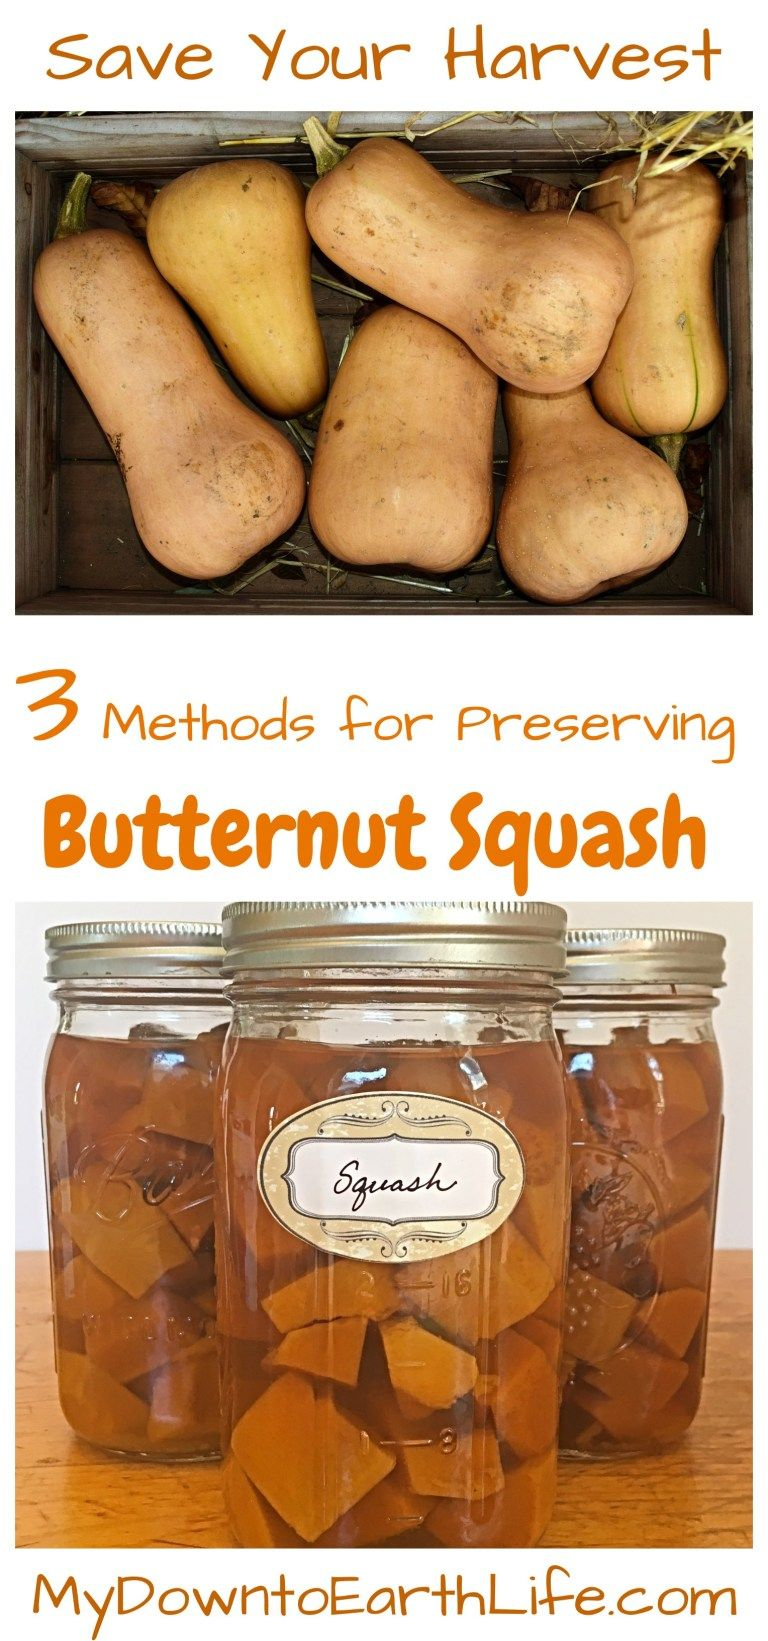 How to Preserve Butternut Squash (With images) Frozen